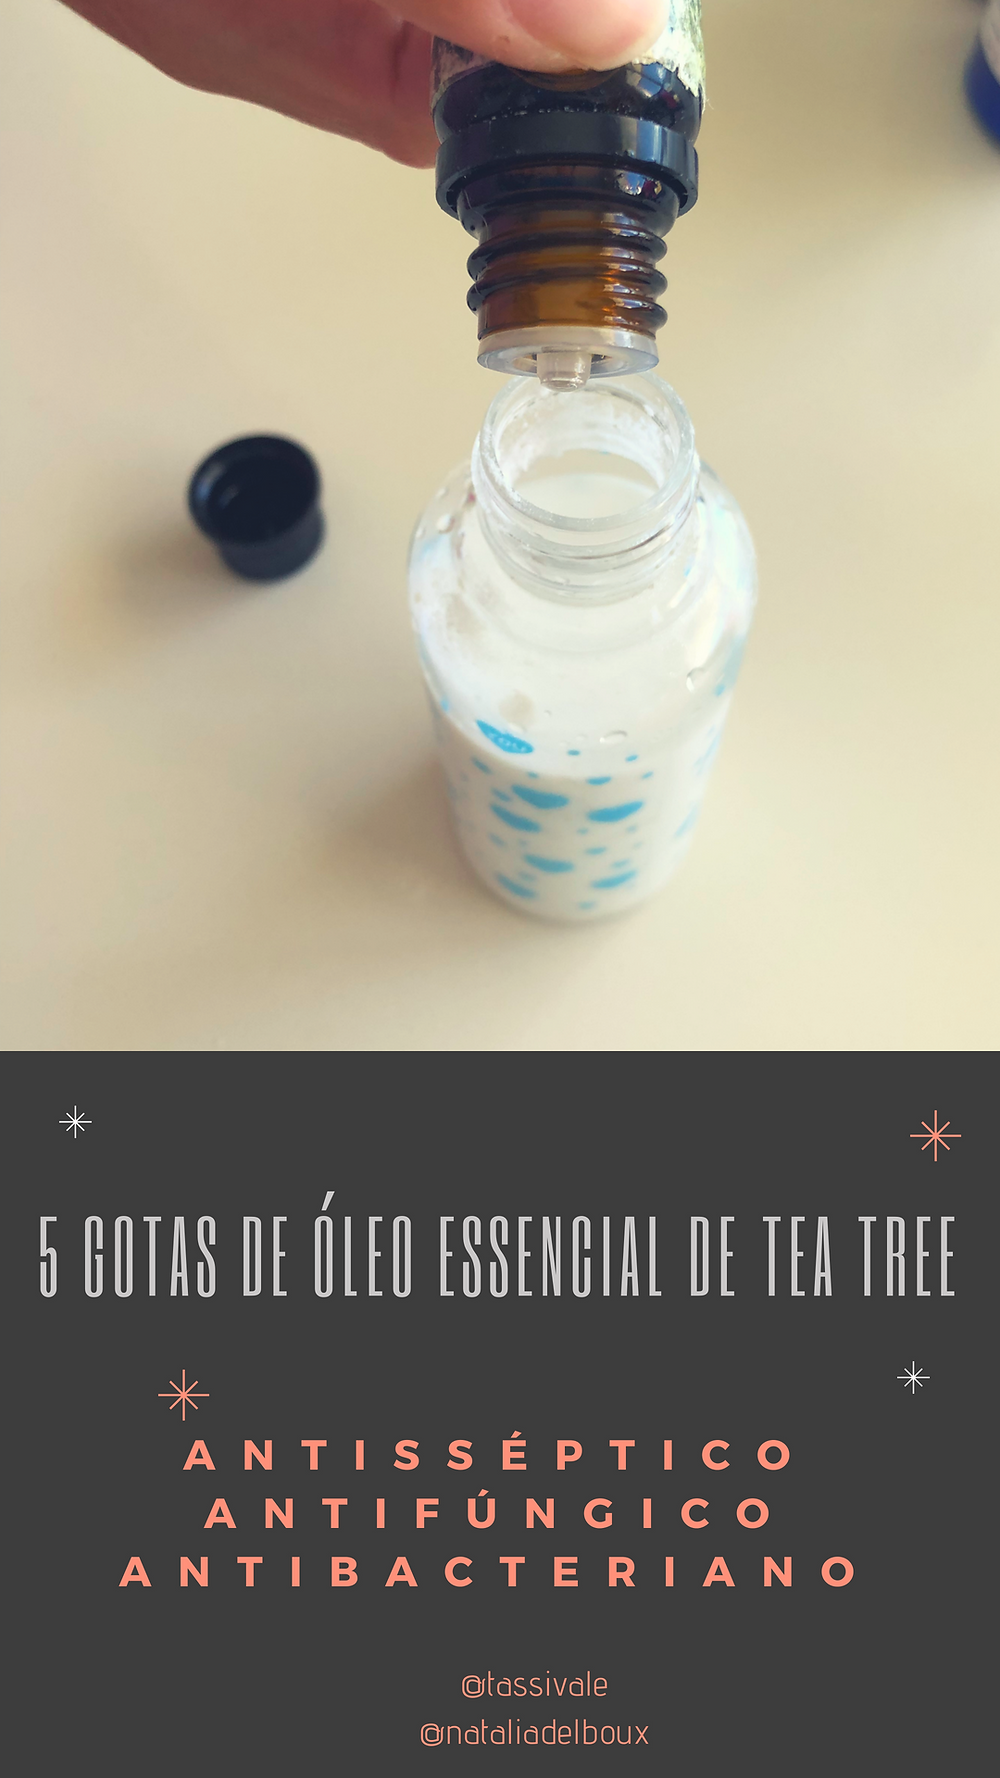 @tassivale Tassiana Vale D' Elboux Tassi Vale desodorante natural óleo essencial tea tree beneficios